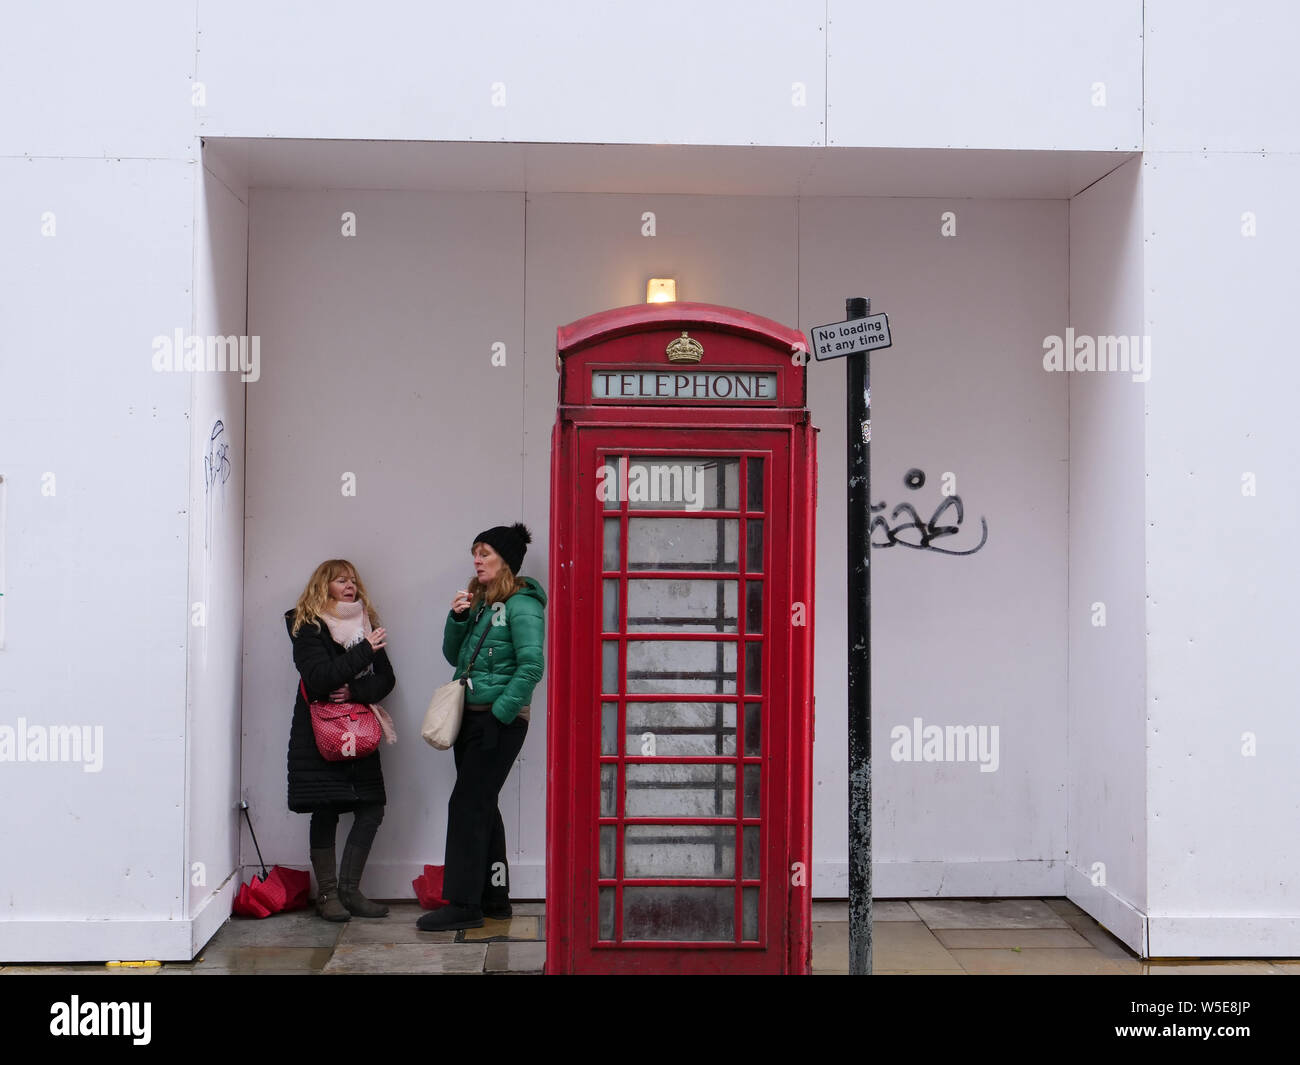 Two people take shelter from the rain next to a classic telephone box and cultural British icon, in London. Stock Photo